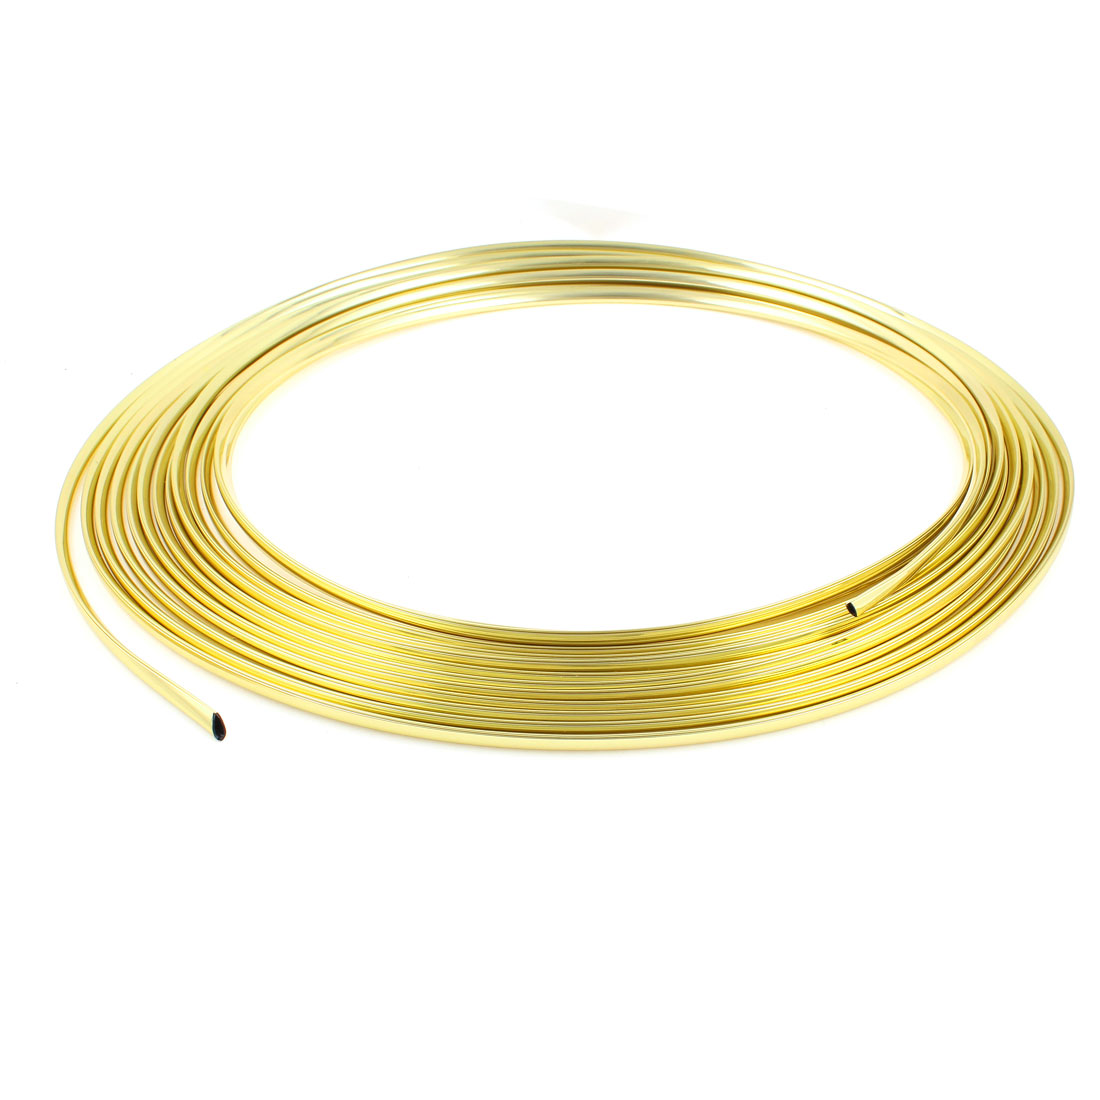 Car Window Steering DIY Moulding Trim Decoration Strip Gold Tone 15M x 7MM